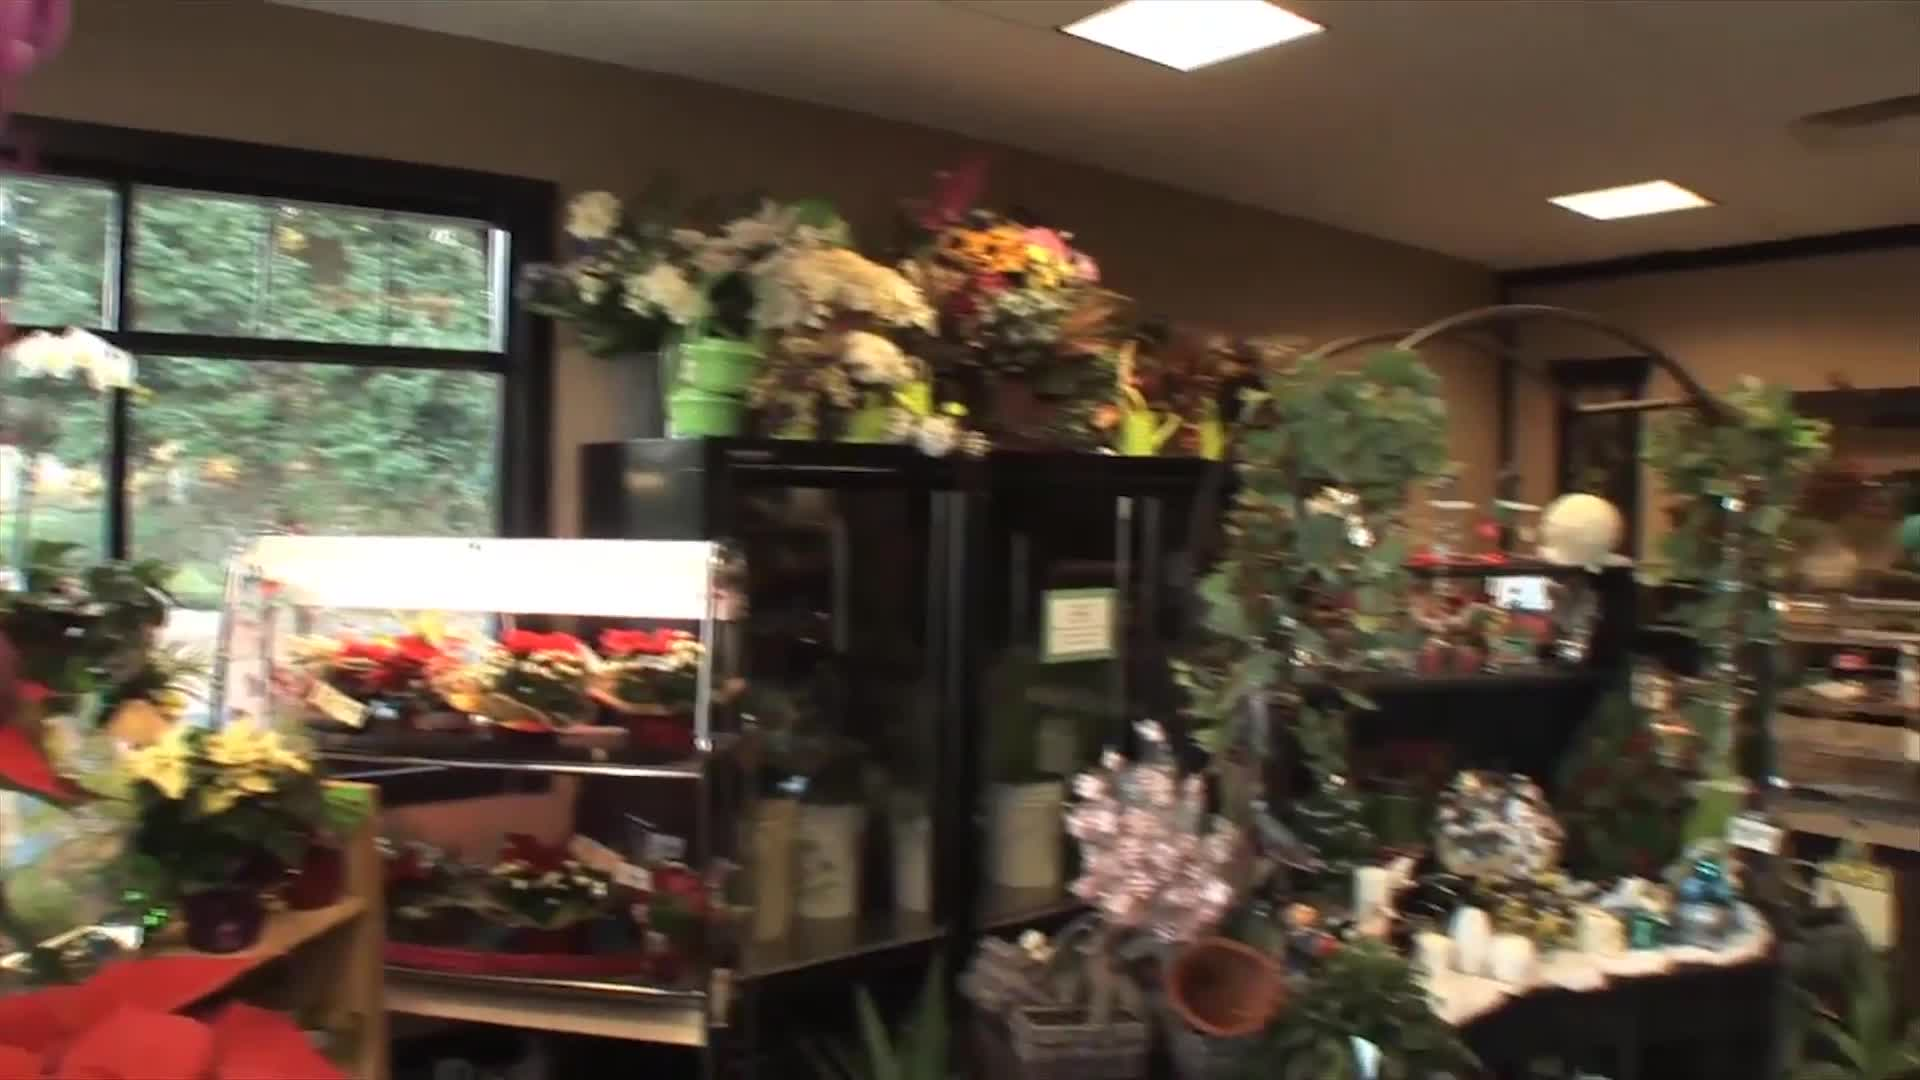 That Flower Shop on Vedder - Florists & Flower Shops - 604-824-9121